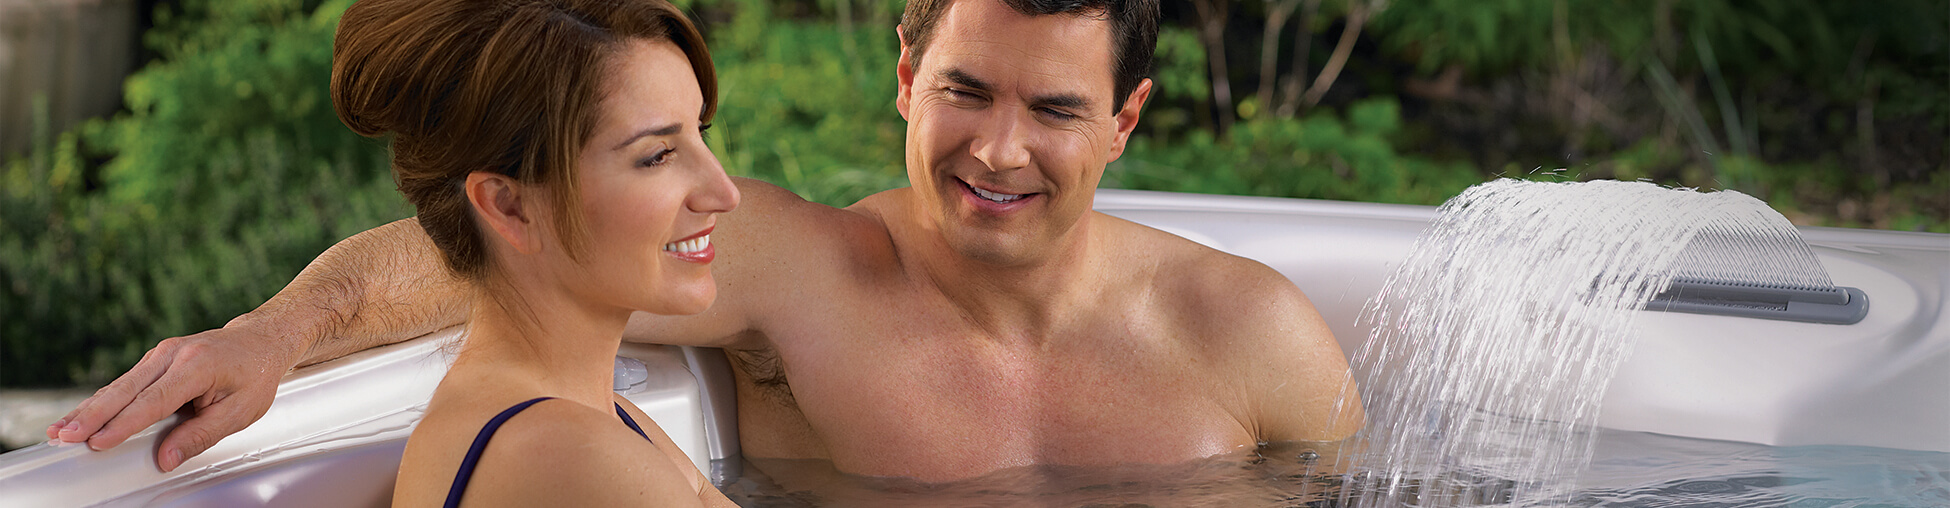 3 Ways to Better Yourself with a Hot Tub at Home, Used Spas Sioux Falls